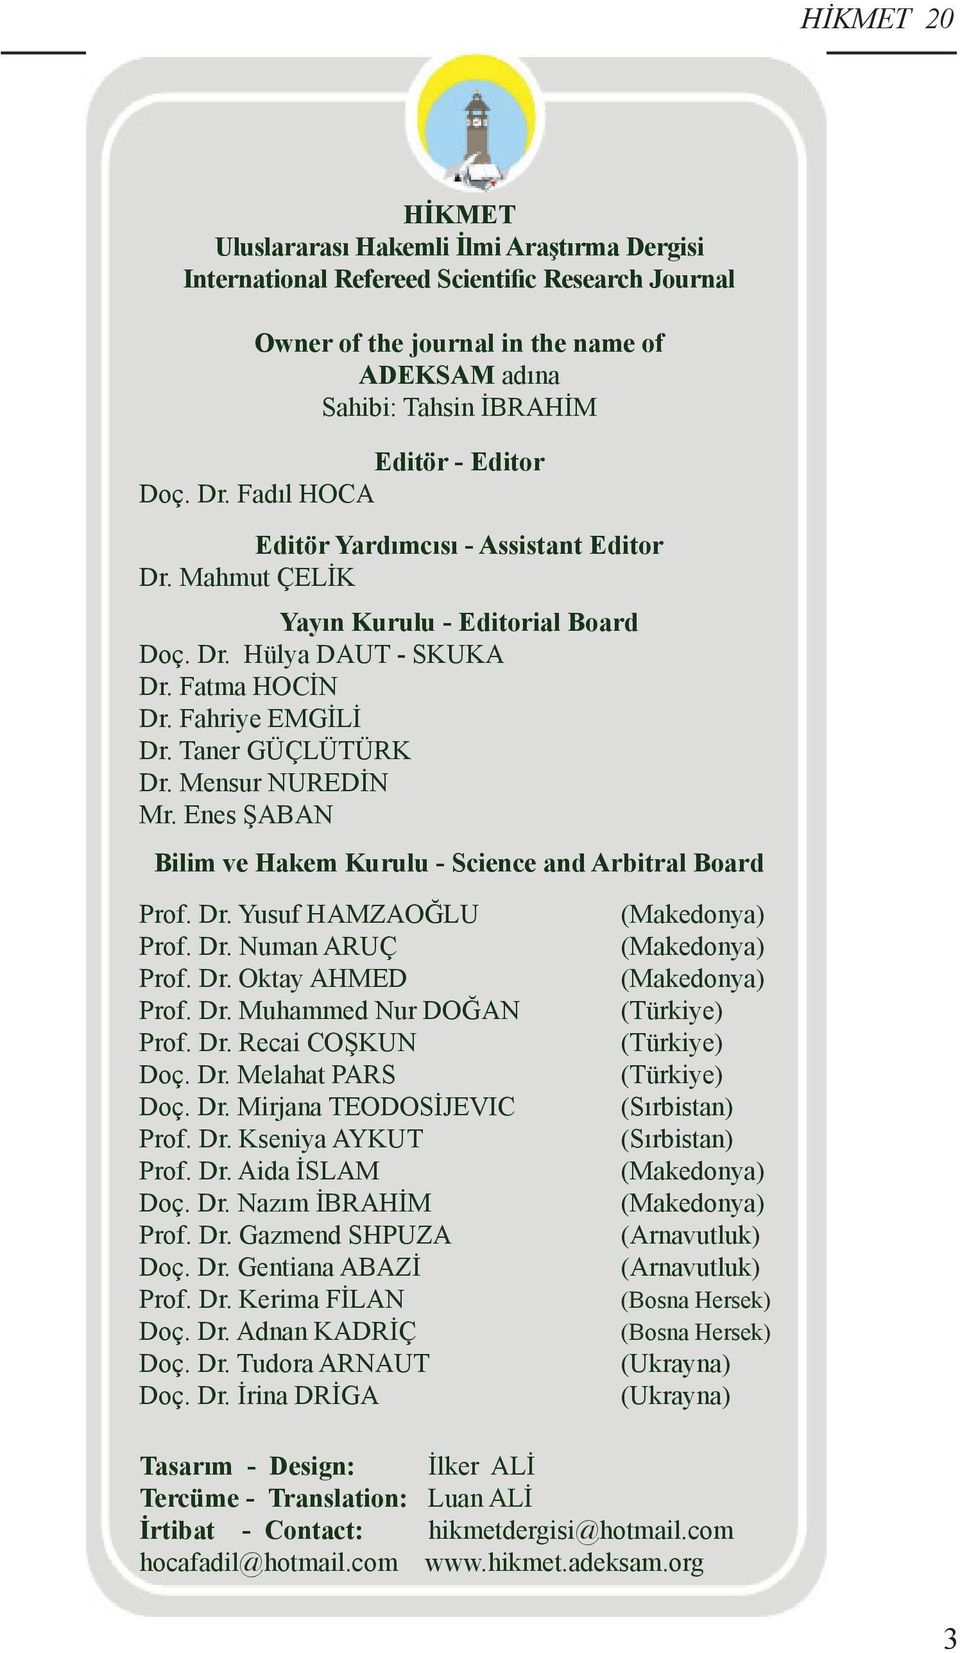 Mensur NUREDİN Mr. Enes ŞABAN Bilim ve Hakem Kurulu - Science and Arbitral Board Prof. Dr. Yusuf HAMZAOĞLU Prof. Dr. Numan ARUÇ Prof. Dr. Oktay AHMED Prof. Dr. Muhammed Nur DOĞAN Prof. Dr. Recai COŞKUN Doç.